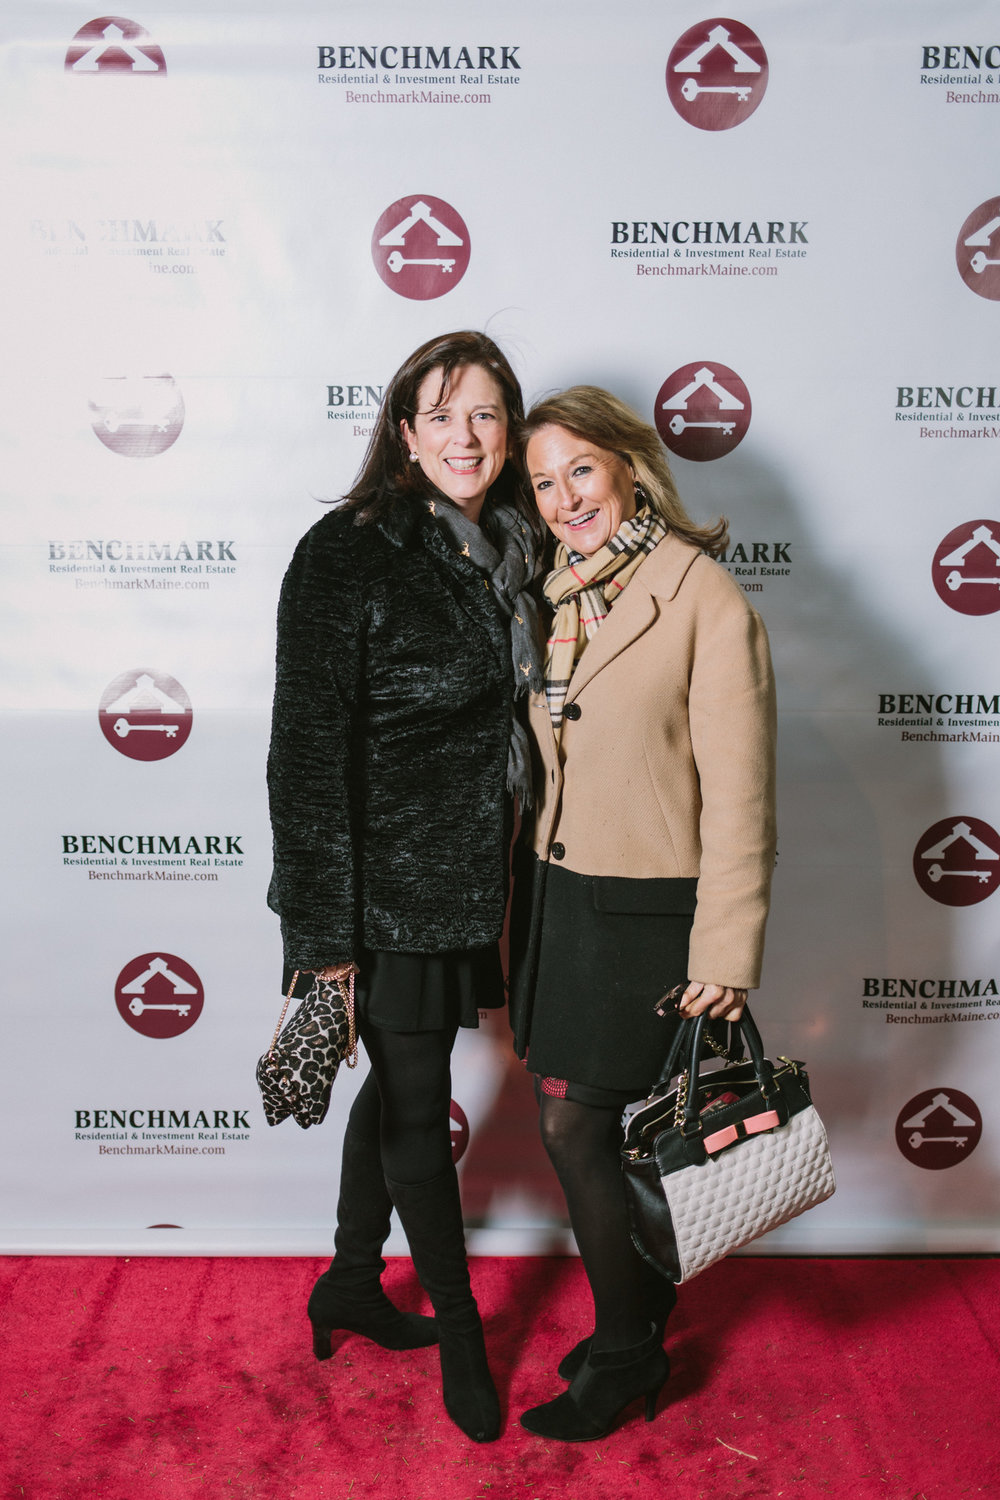 Benchmark_Holiday_Party_SR-059.jpg